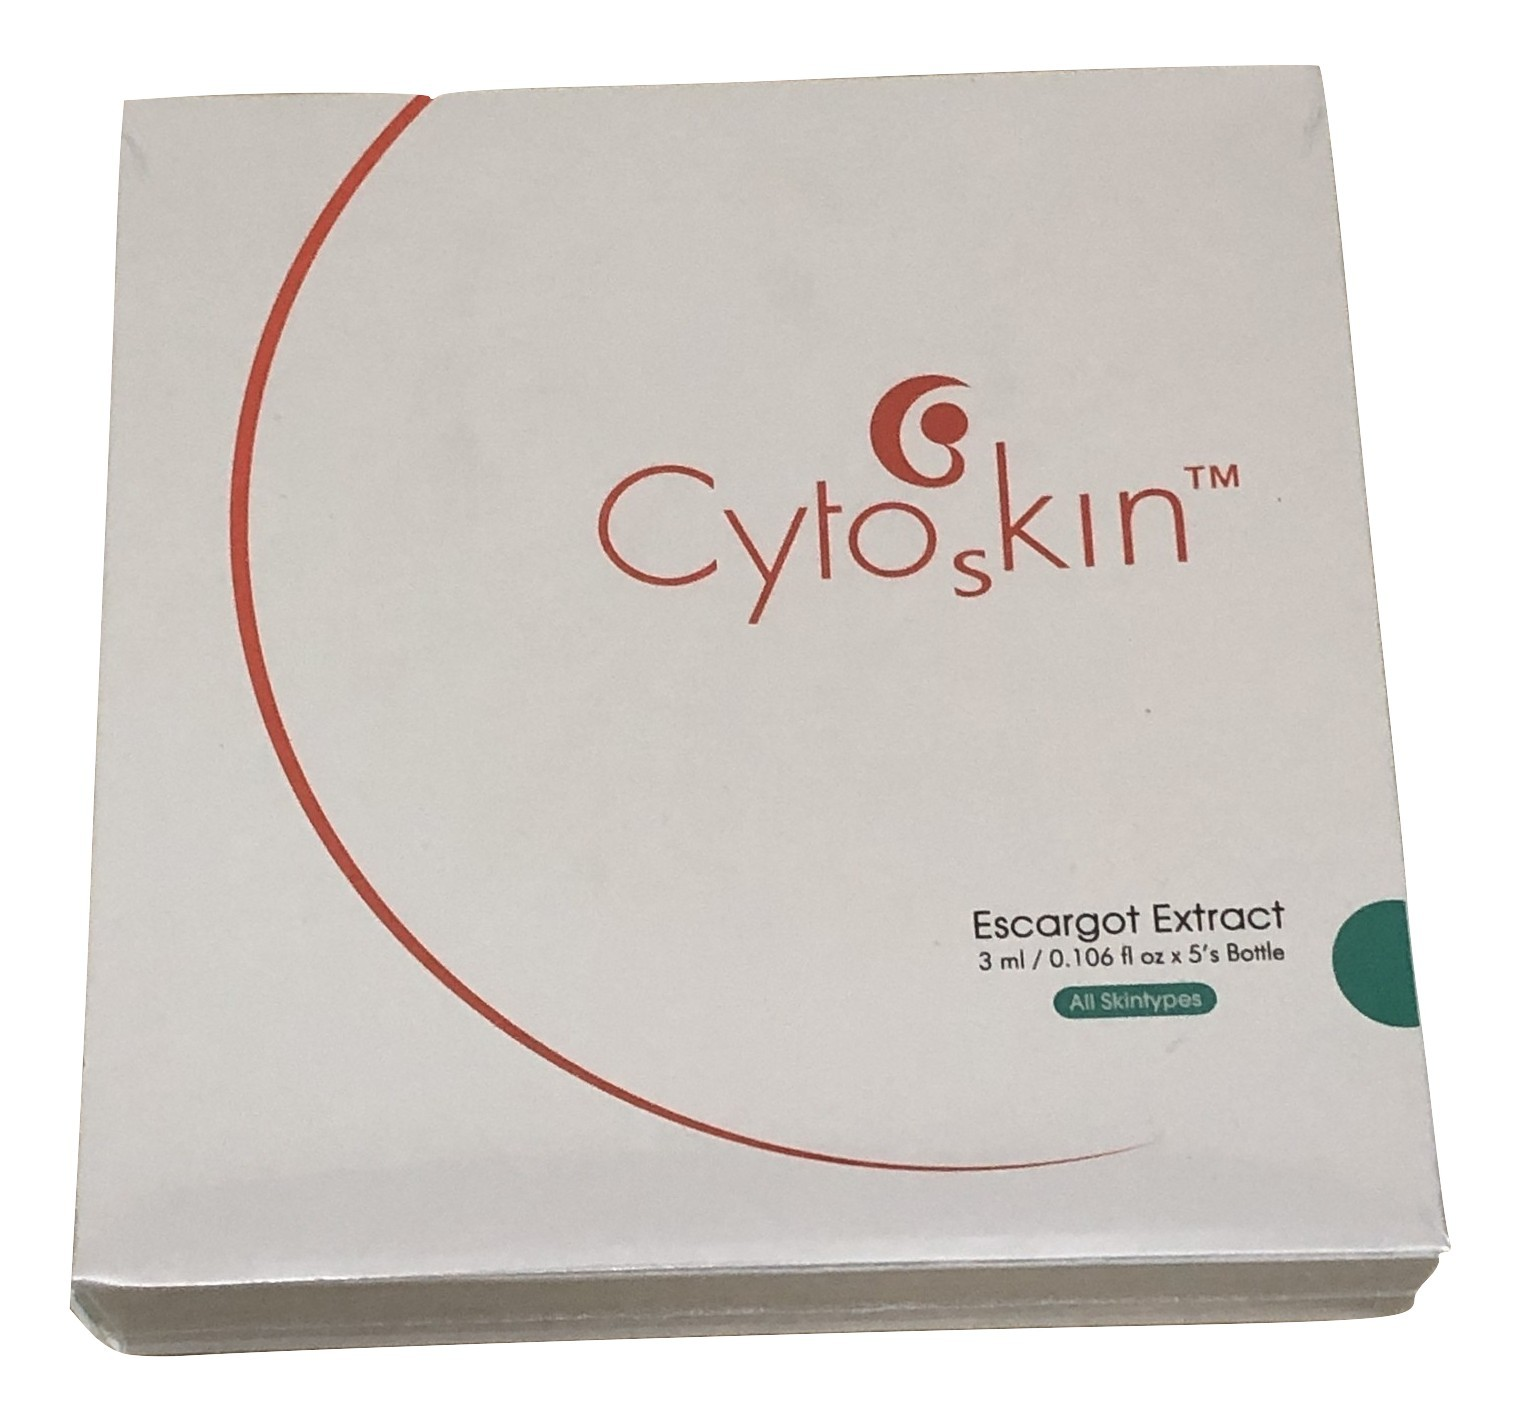 CytoSkin Escargot Extract for Face, 3ml x 5 + Free Sample